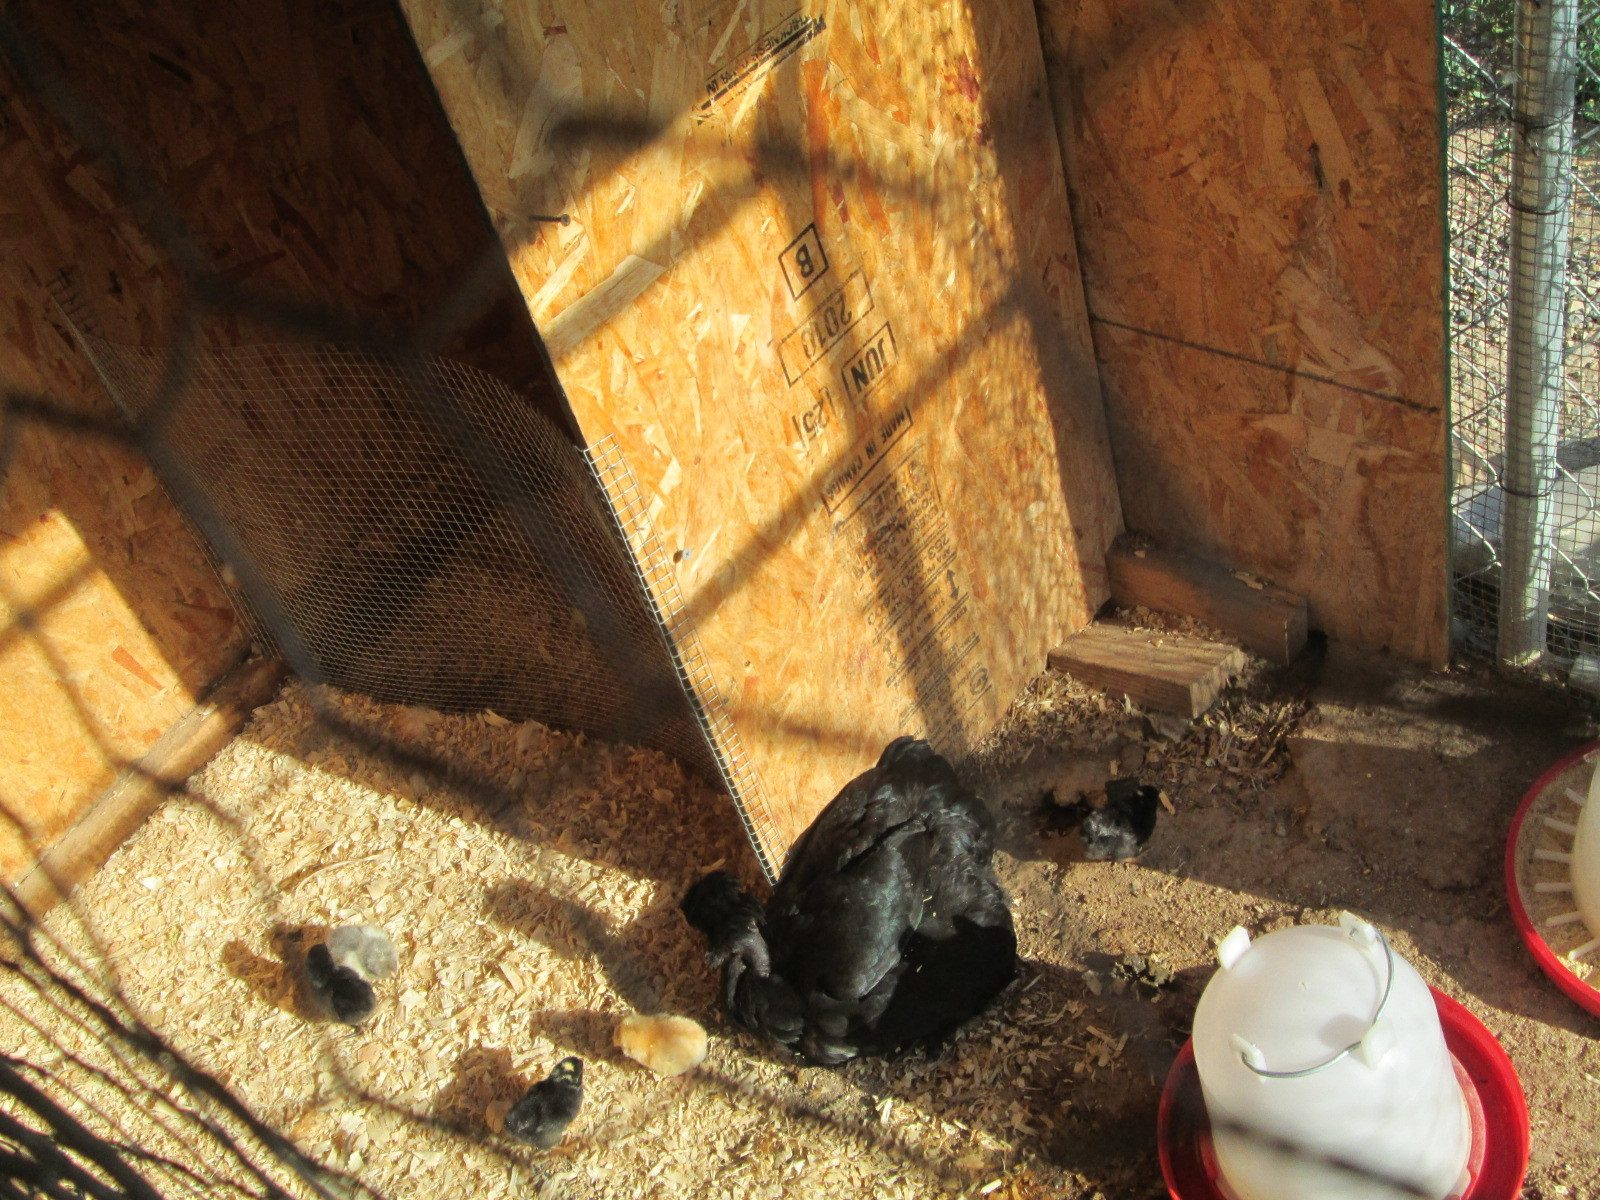 Cynthia12's photos in 2017 Groundhog Day Hatch-a-long Chickens and their Shadows contest!